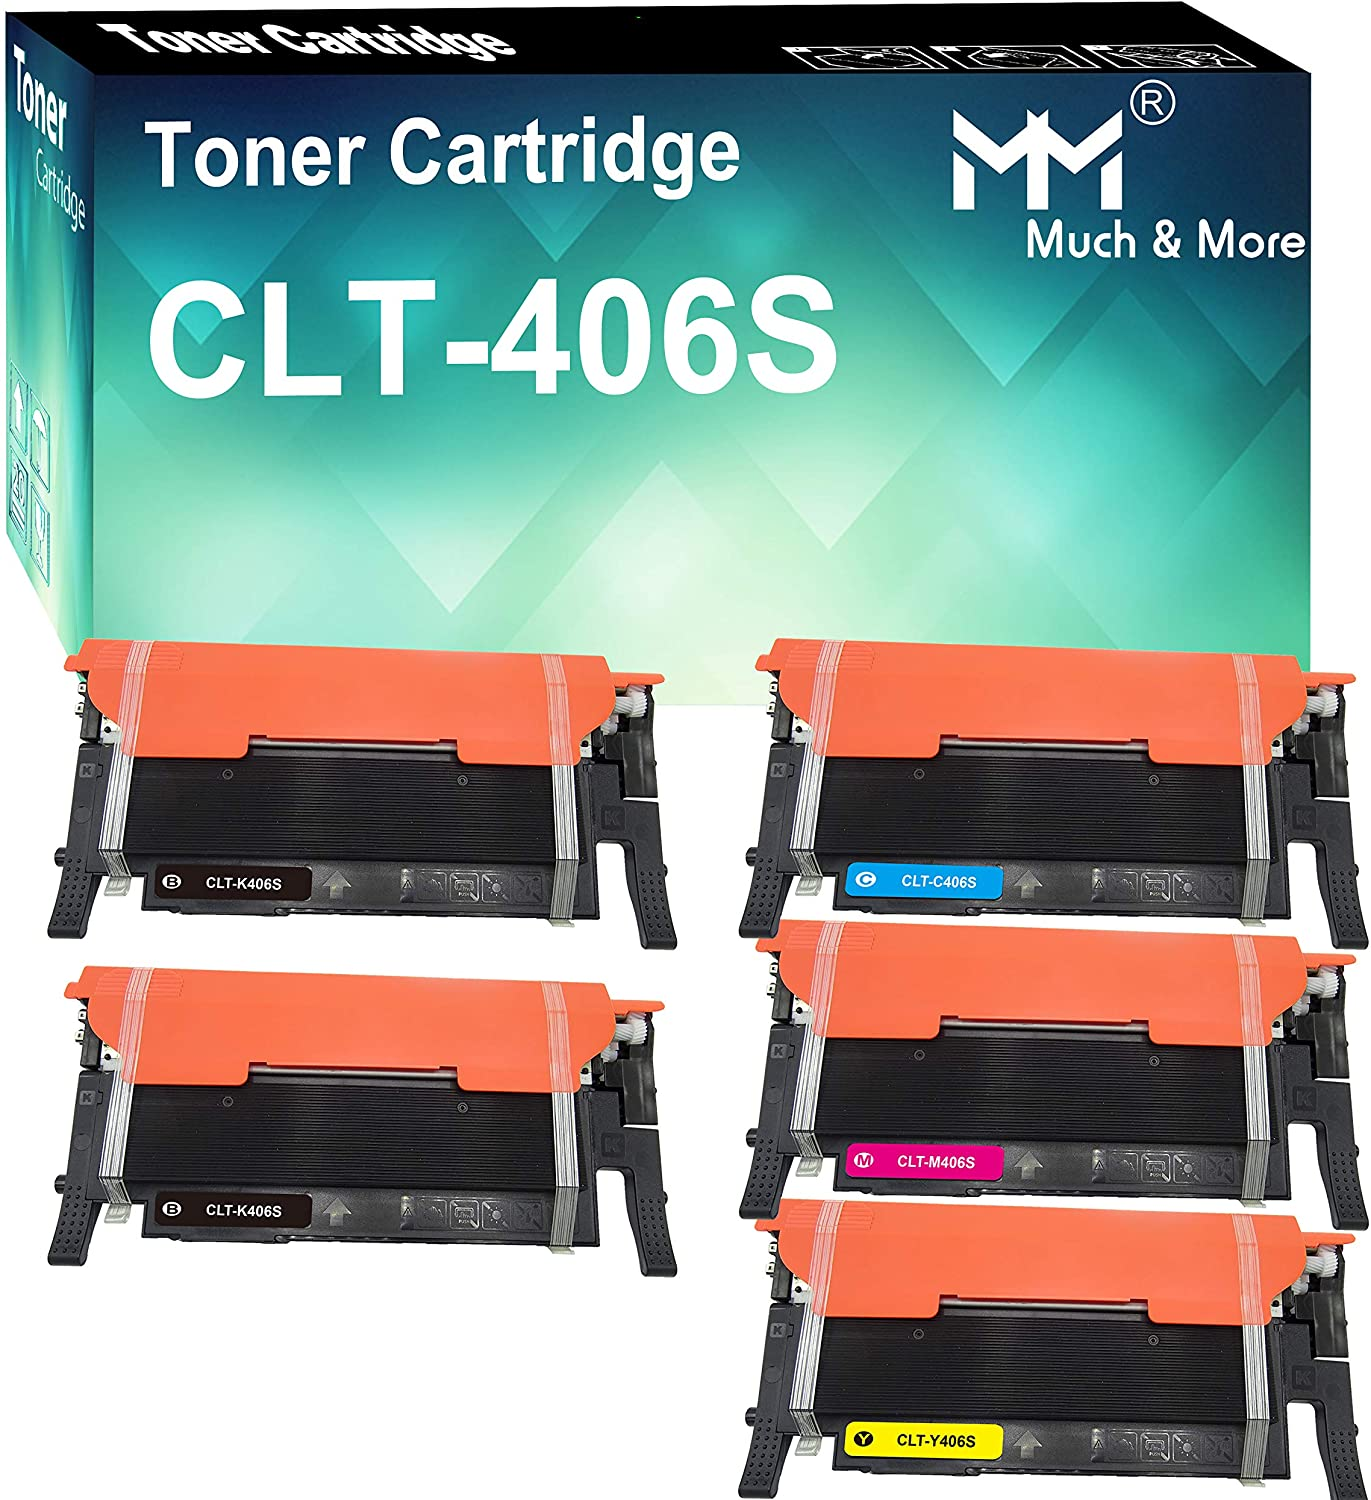 (5-Pack, 2X B+C+M+Y) Compatible CLT-406S Toner Cartridge 406S Used for Samsung CLX-3305FW 3306FW 3307FW SL-C460FW C462FW C463FW CLP-365W 367W Printer, Sold by MuchMore